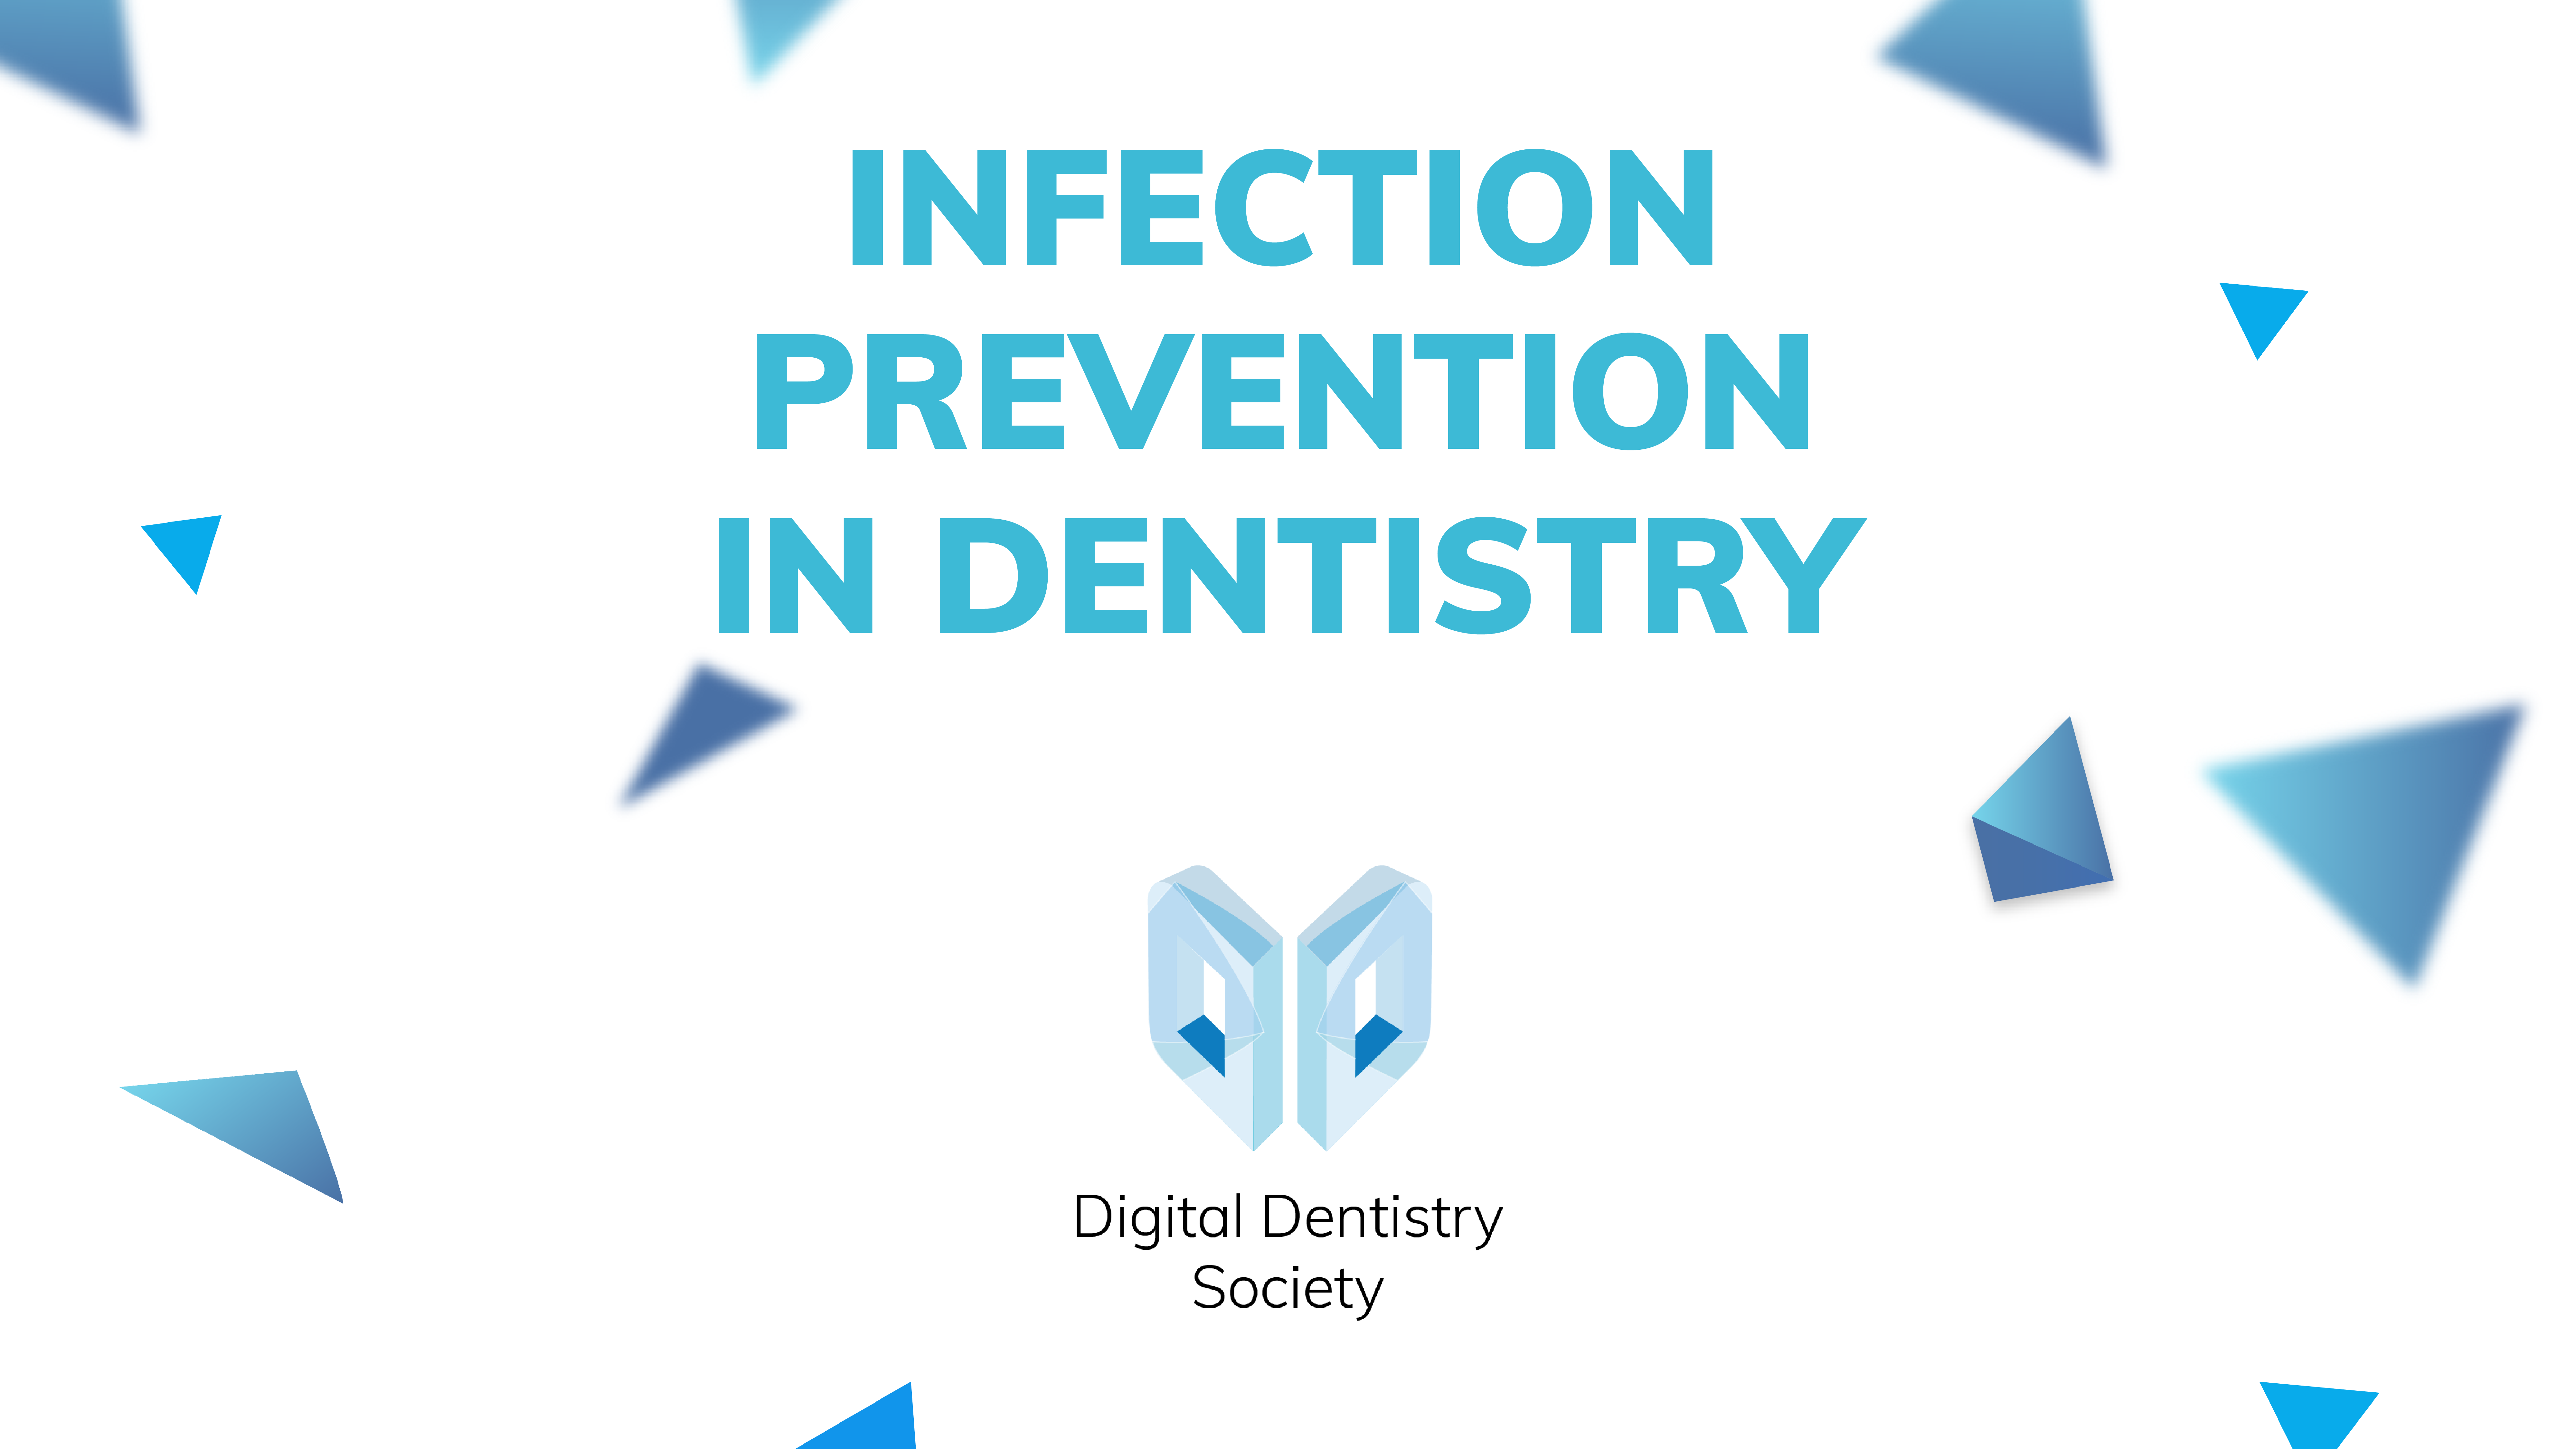 How to prevent infections in dentistry